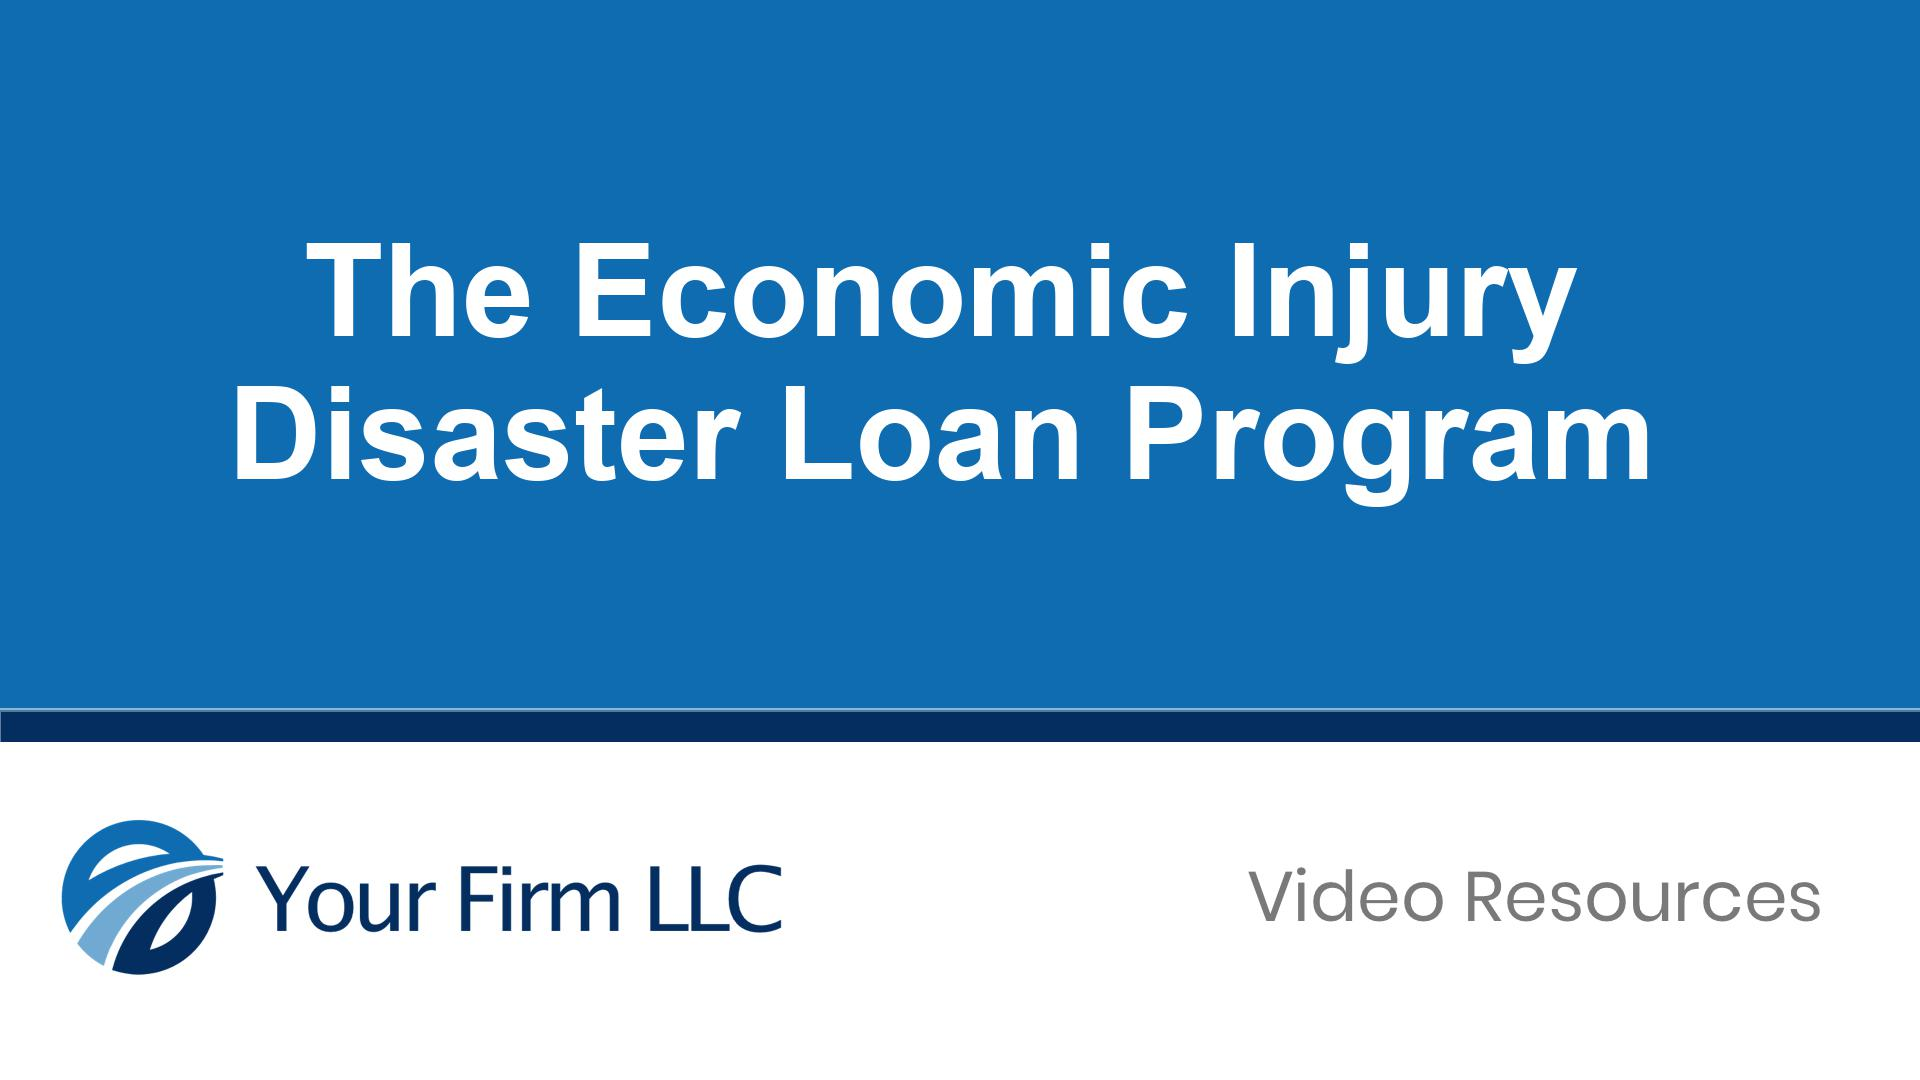 Economic Injury Disaster Loan Program